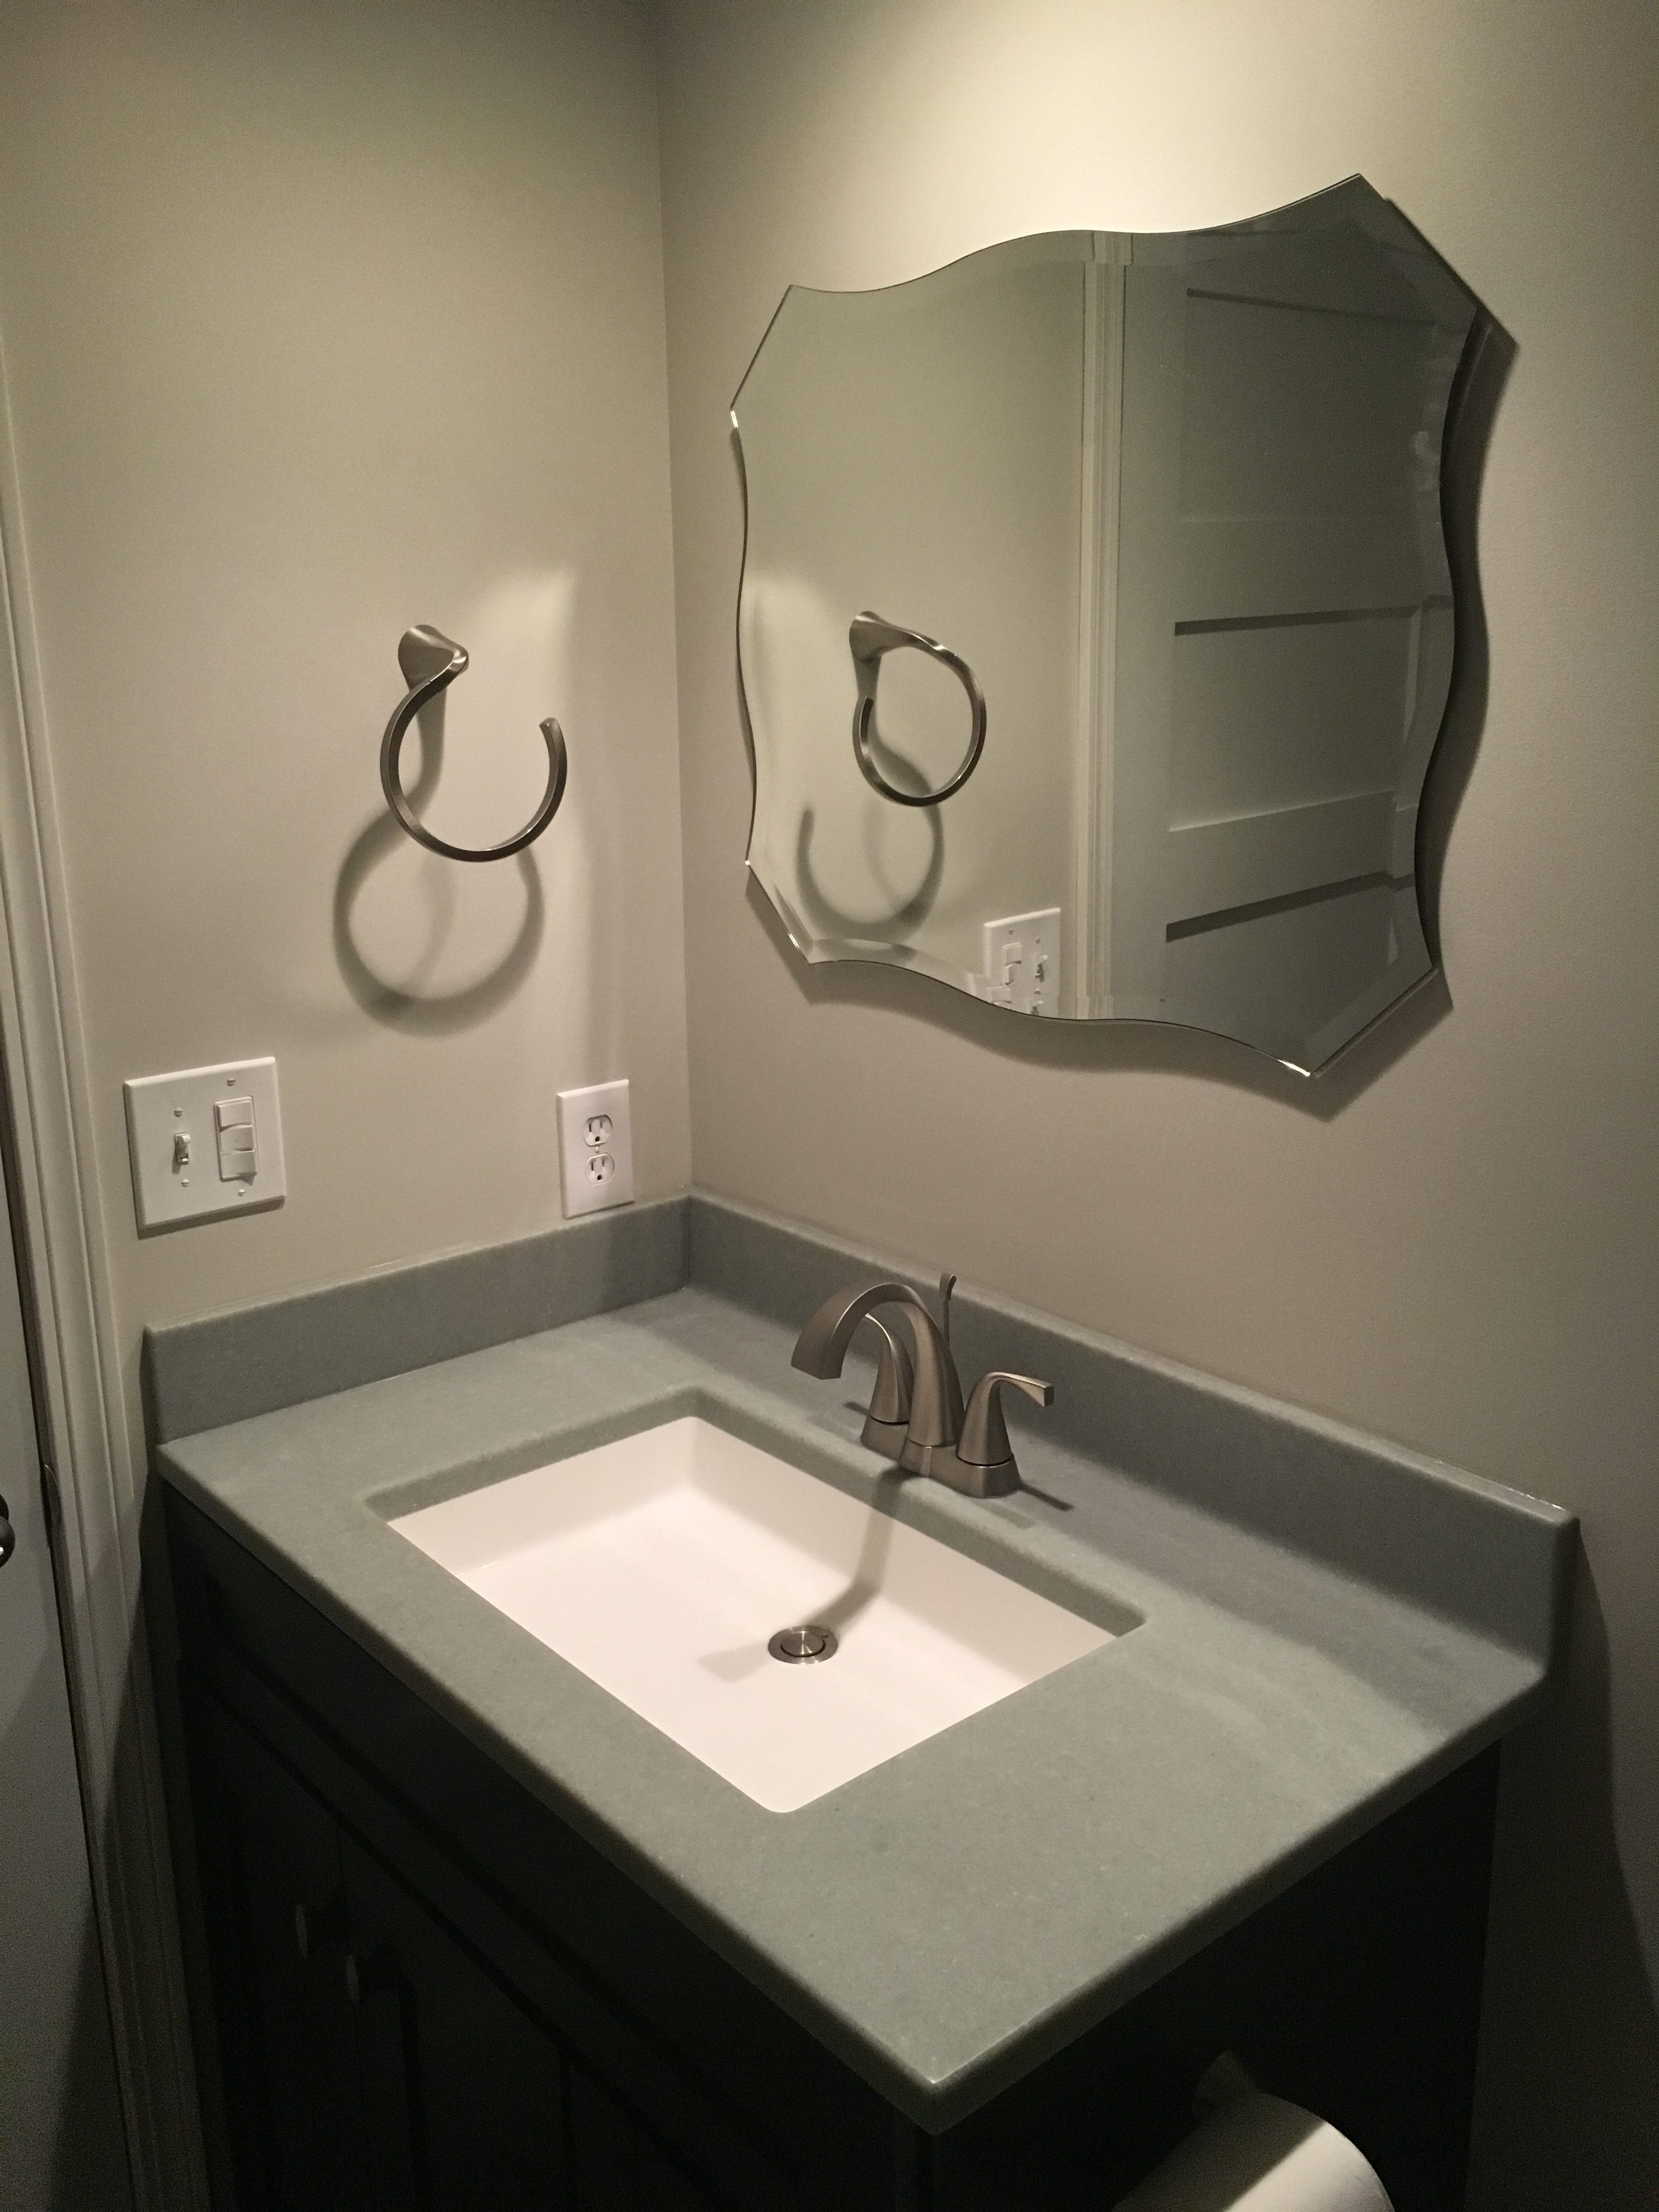 Onyx Collection sink and vanity counter top, mocha vanity cabinet, brushed nickel faucet, moen faucet